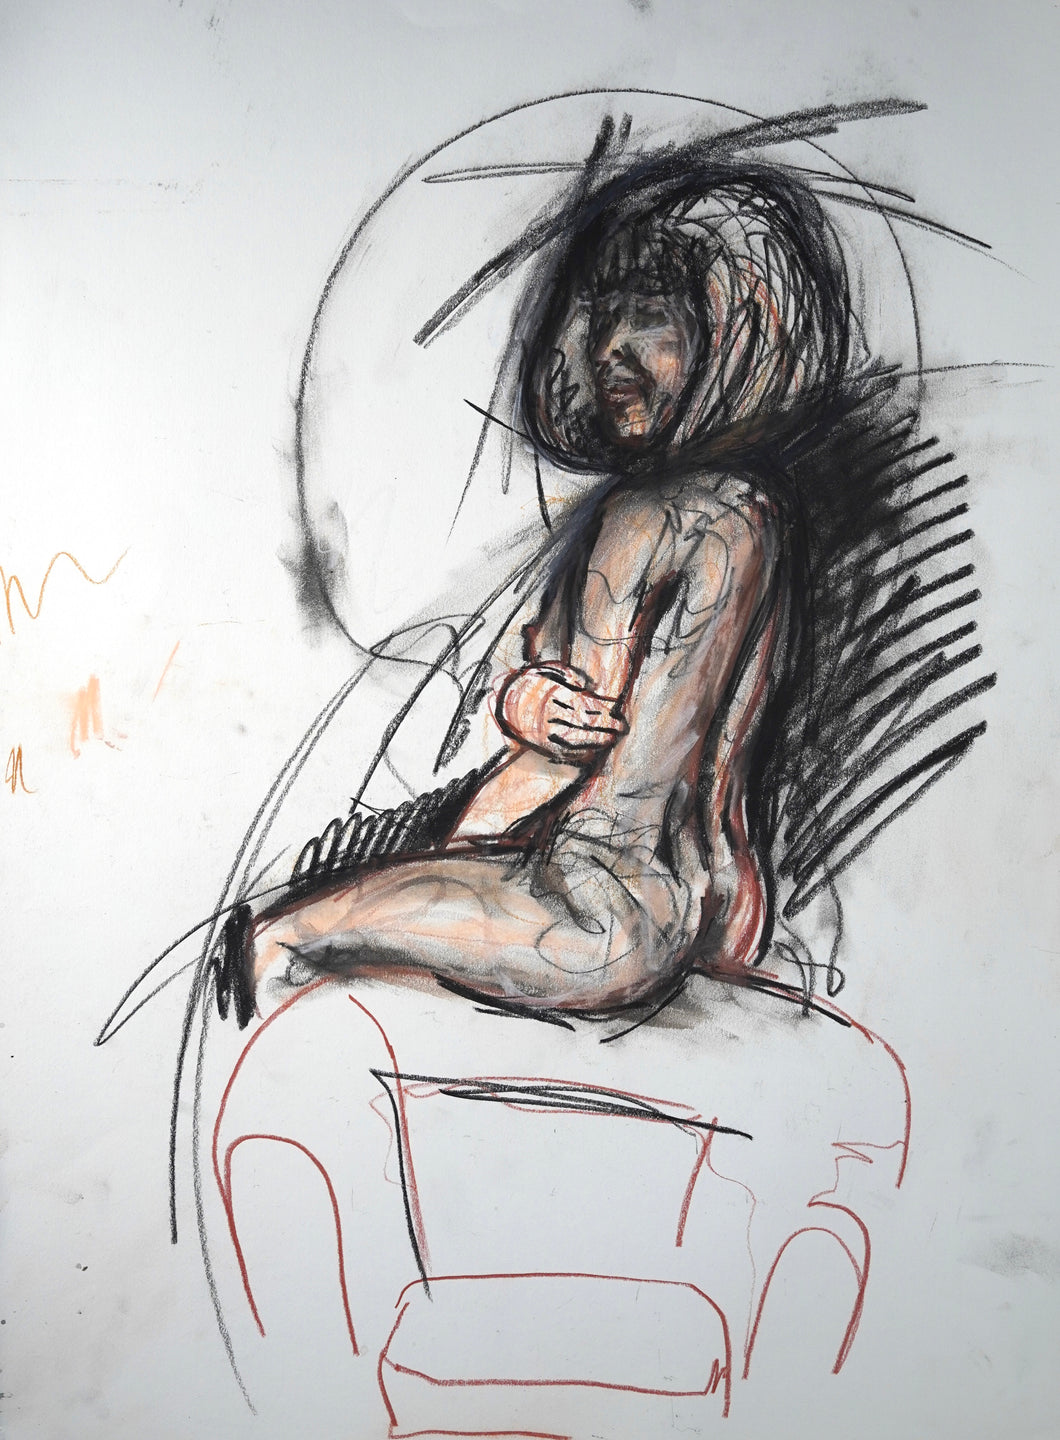 274 - Woman on Chair, 2008